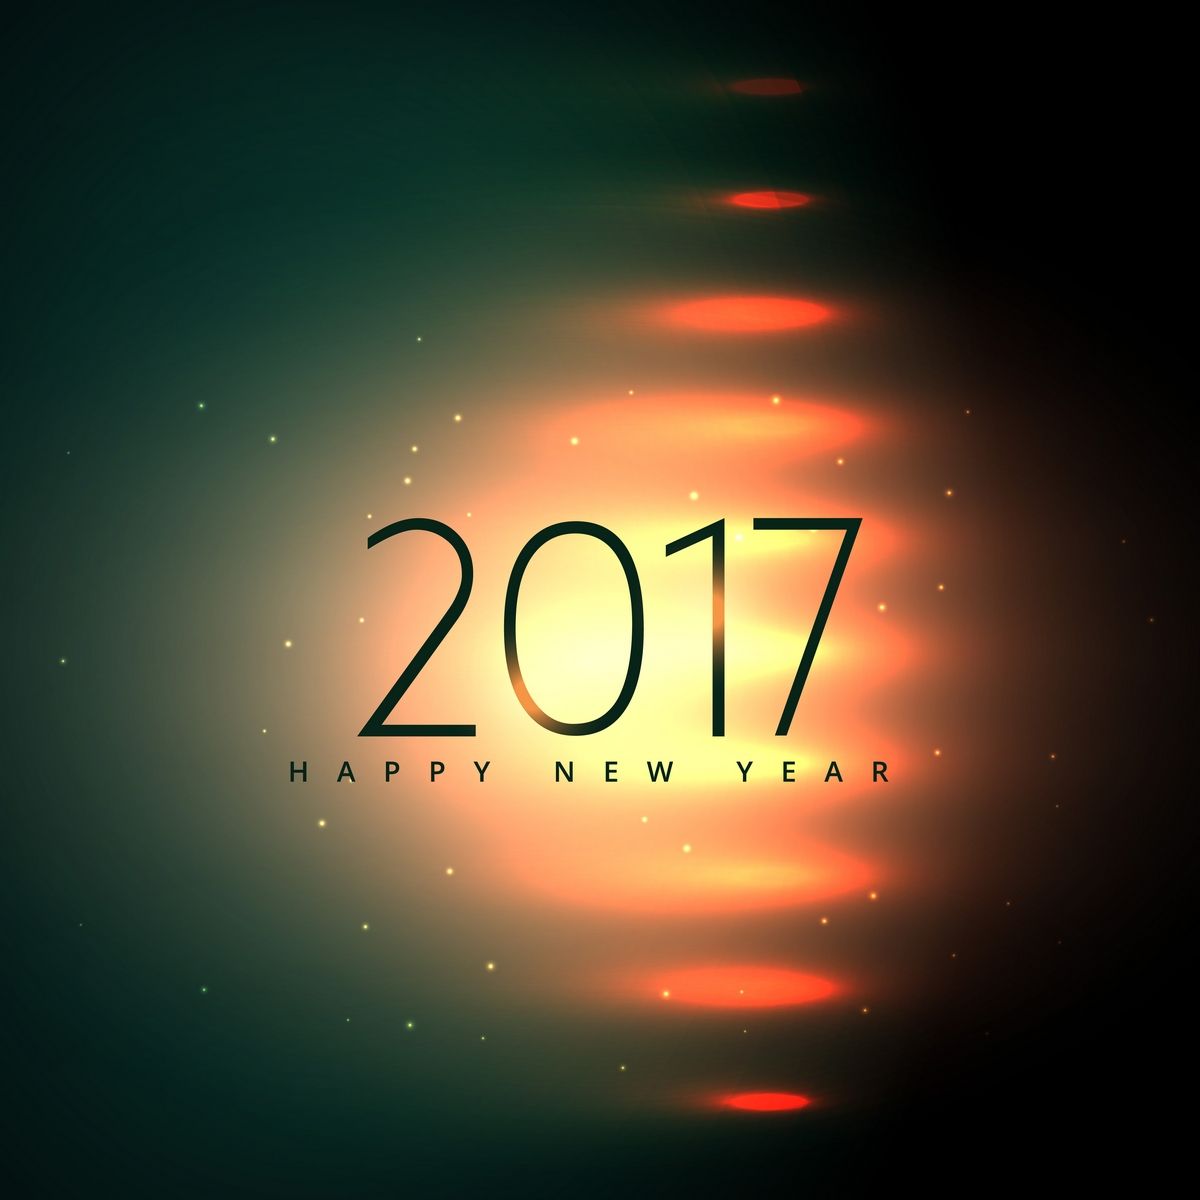 Romantic Happy New Year 2017 Quotes For Lovers